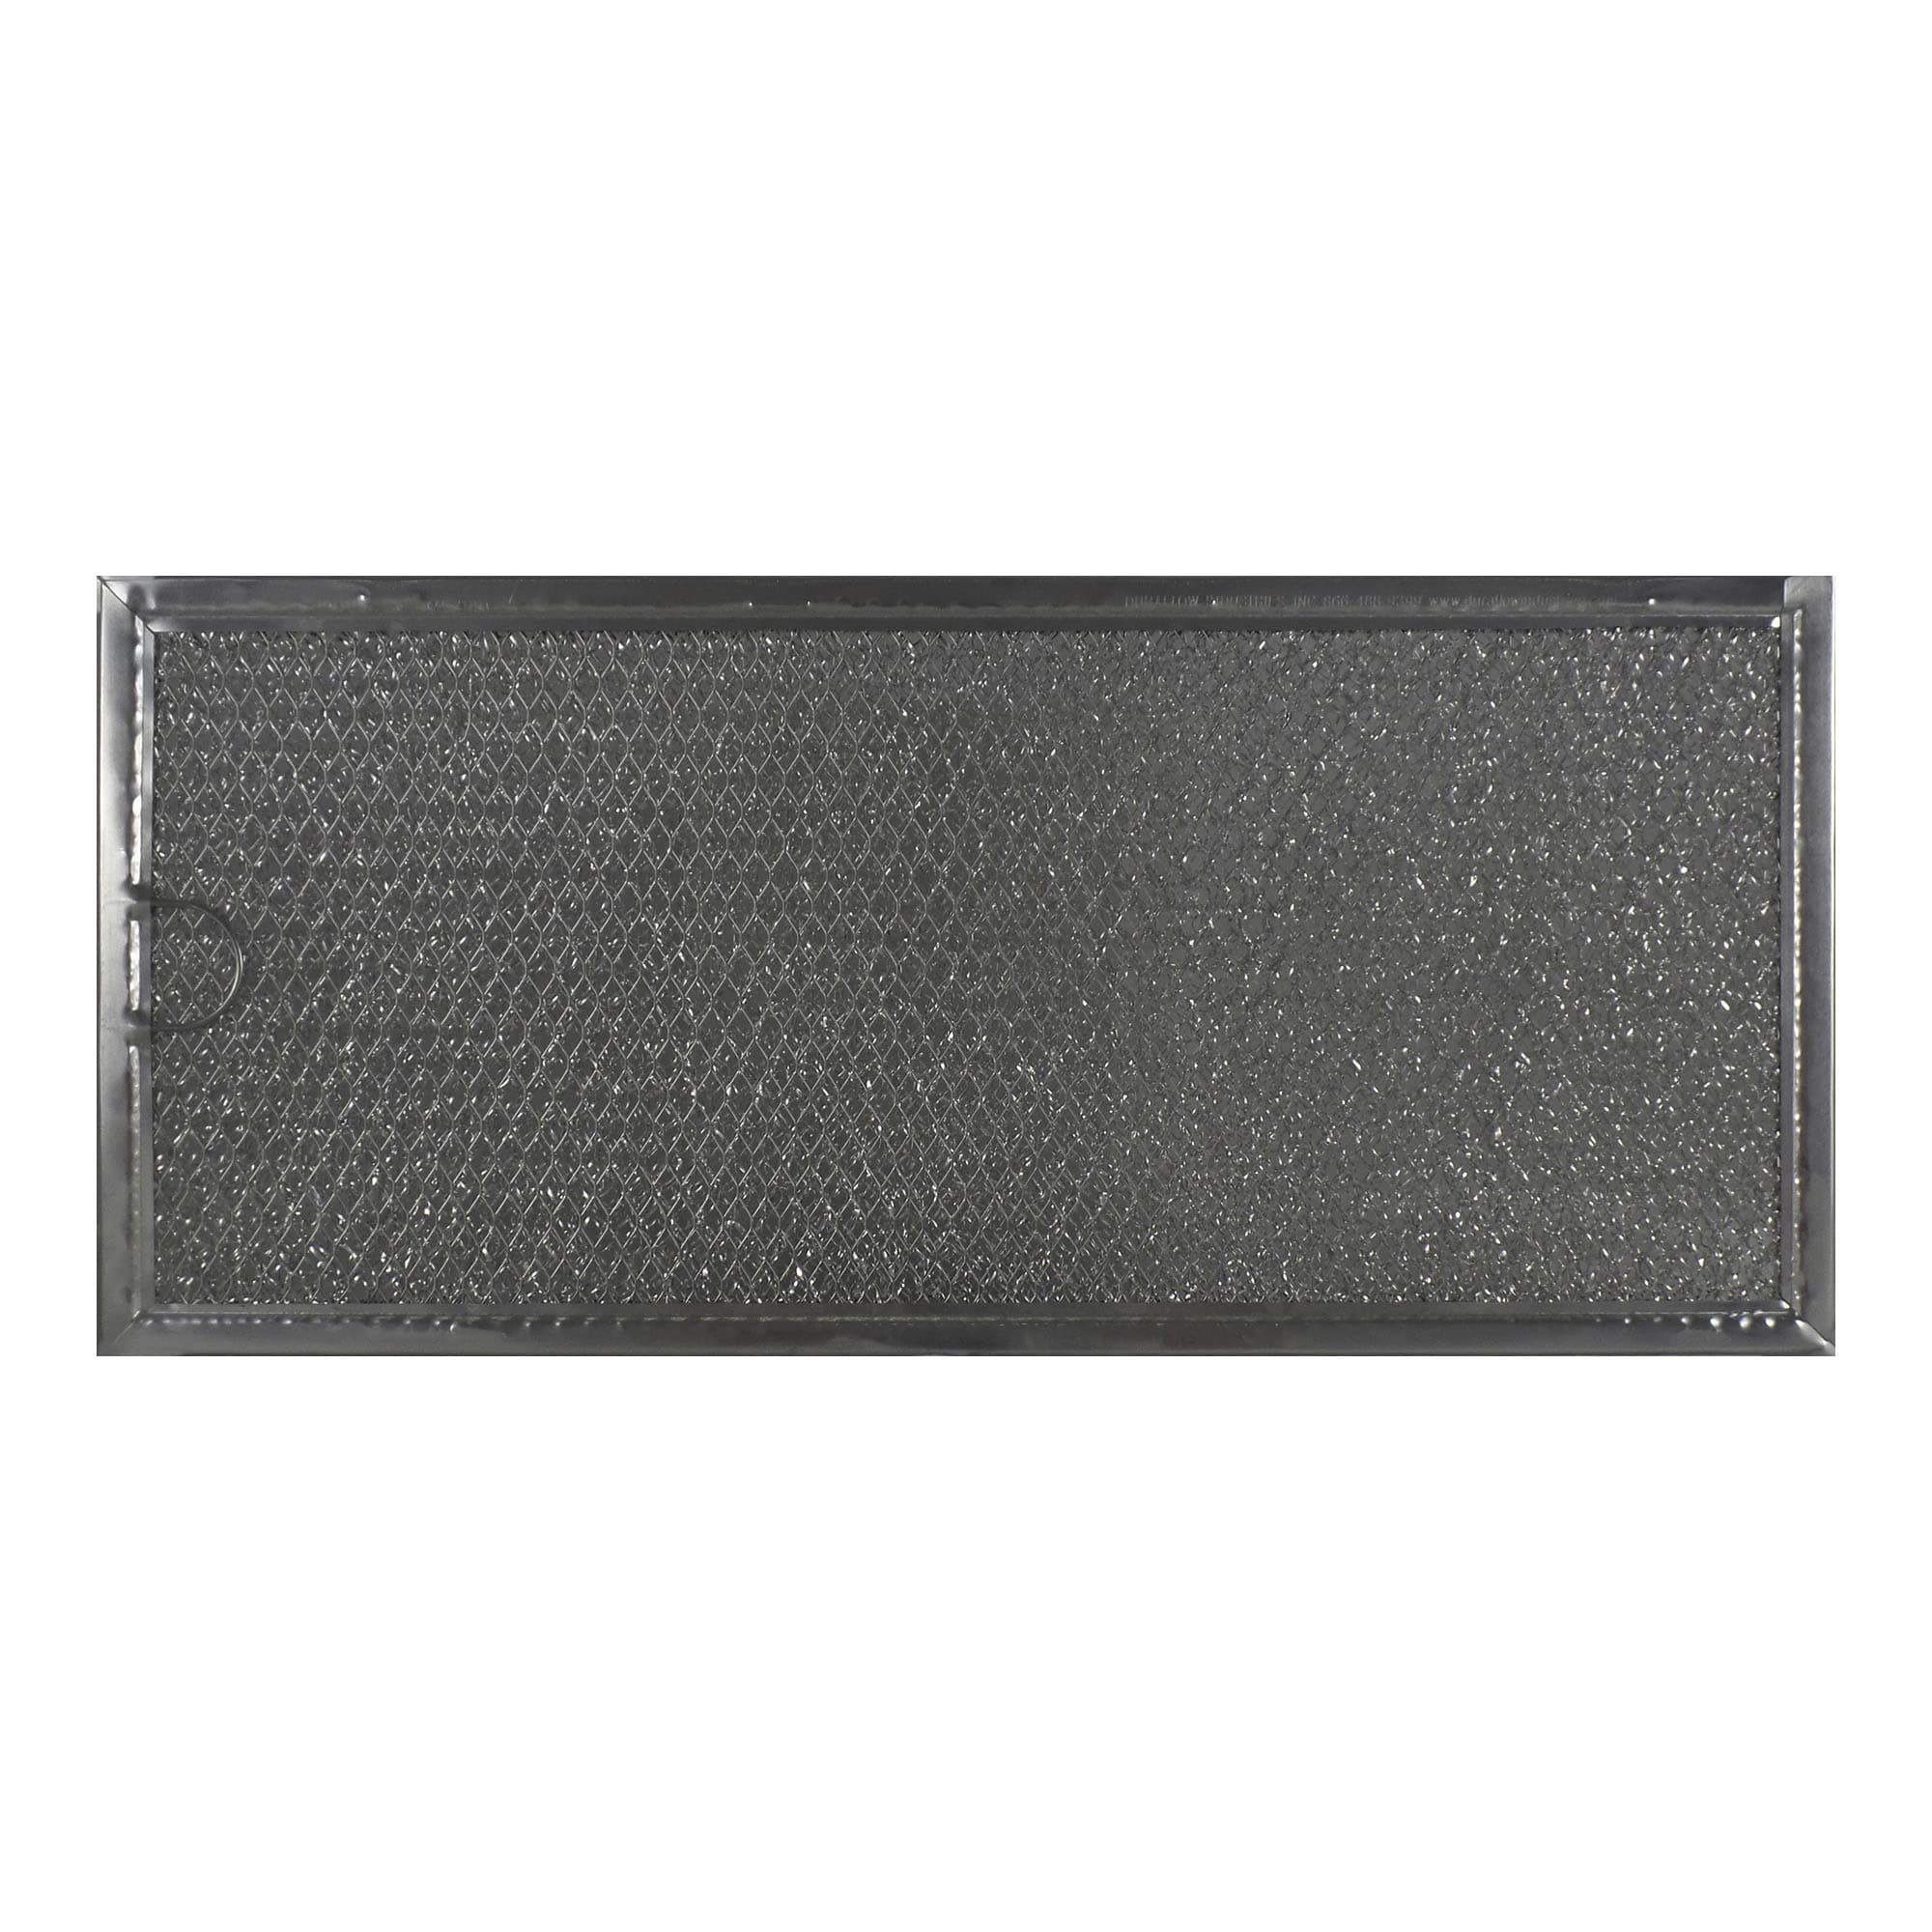 Whirlpool 6802 A Aluminum Mesh Range Hood Filter Replacement